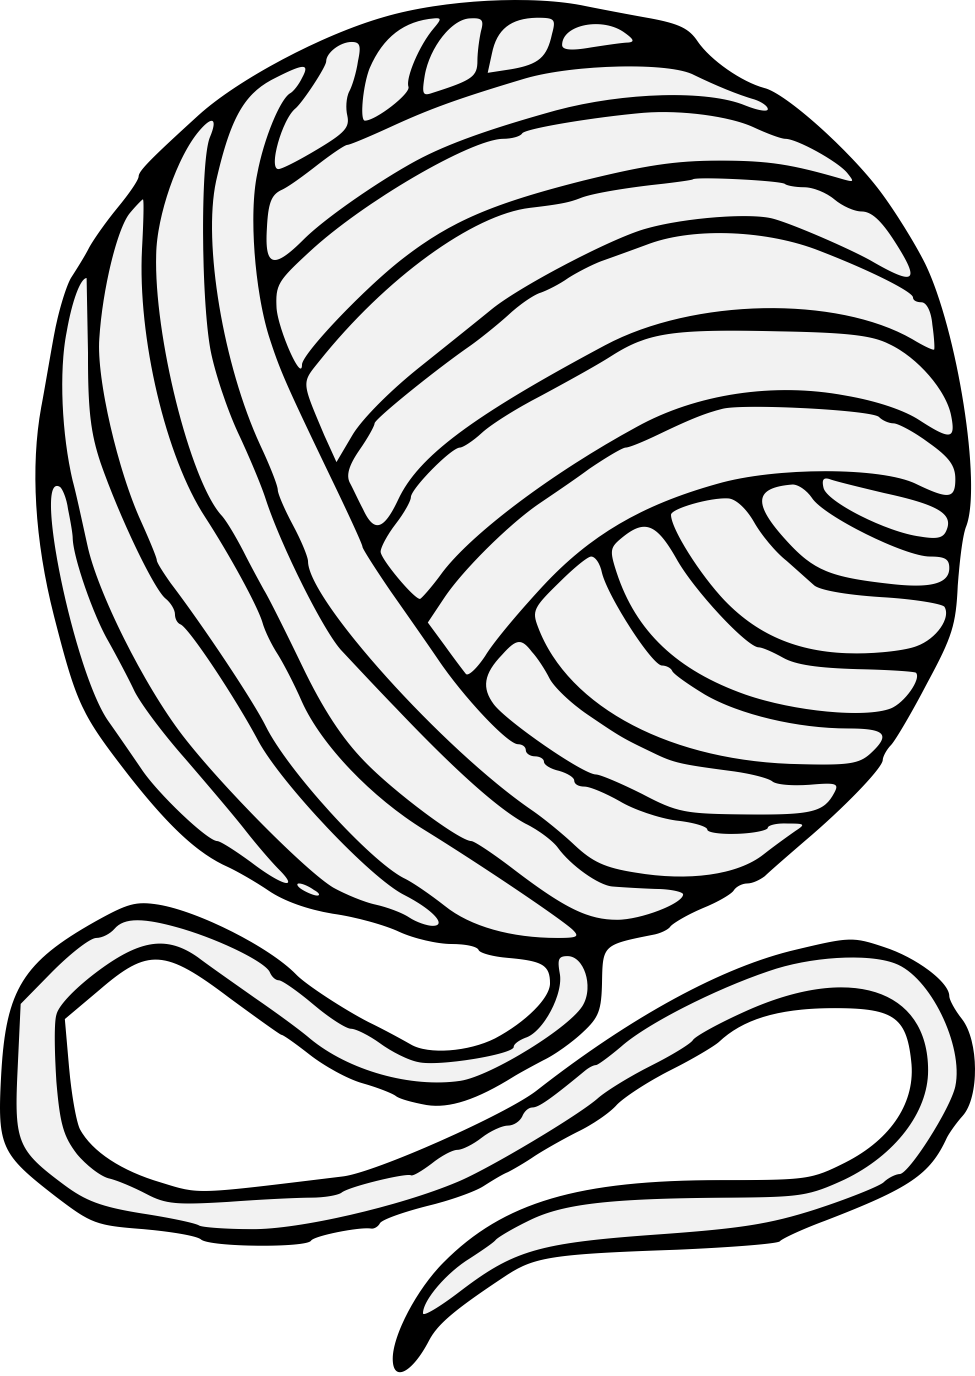 yarn coloring pages - HD920×1337